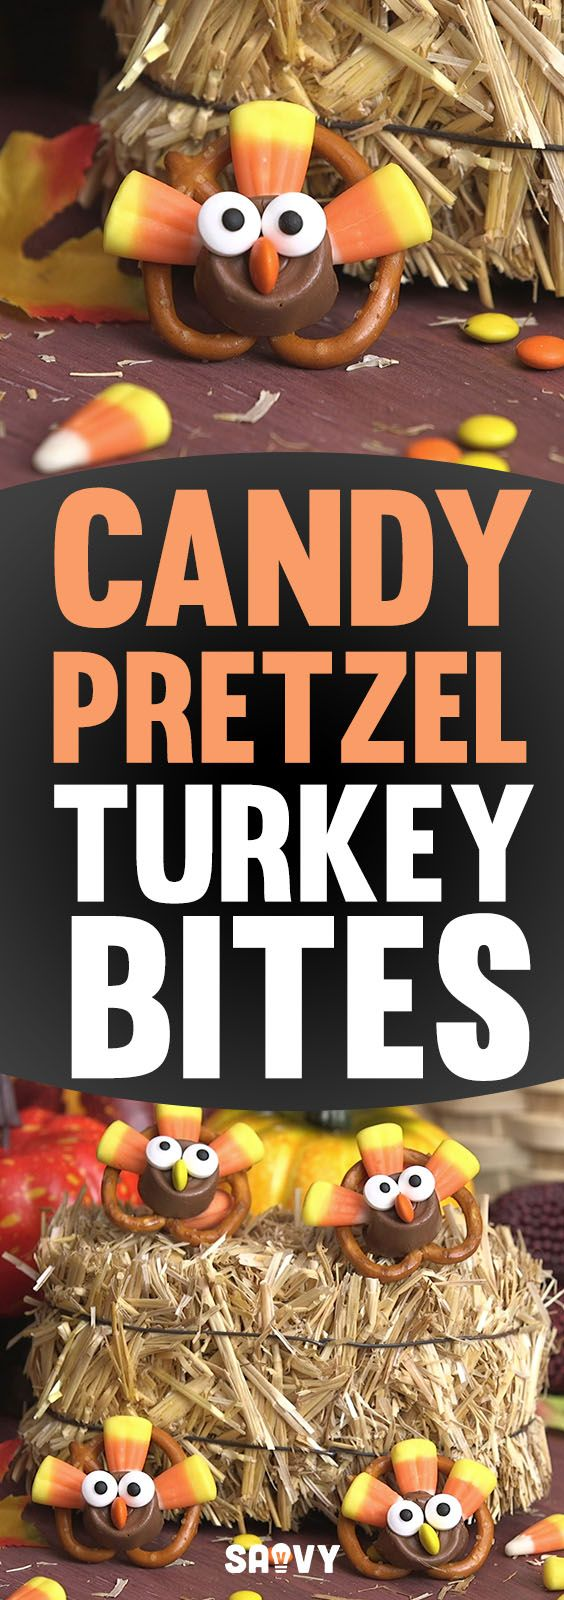 Can Thanksgiving dinner get any more delicious than it already is? Apparently it can! These Candy Pretzel Turkey Bites are a super delicious treat that your whole family will love. The salty and sweet combo is awesome, and since they're really easy to make you can have your kids give you a hand in putting them together.